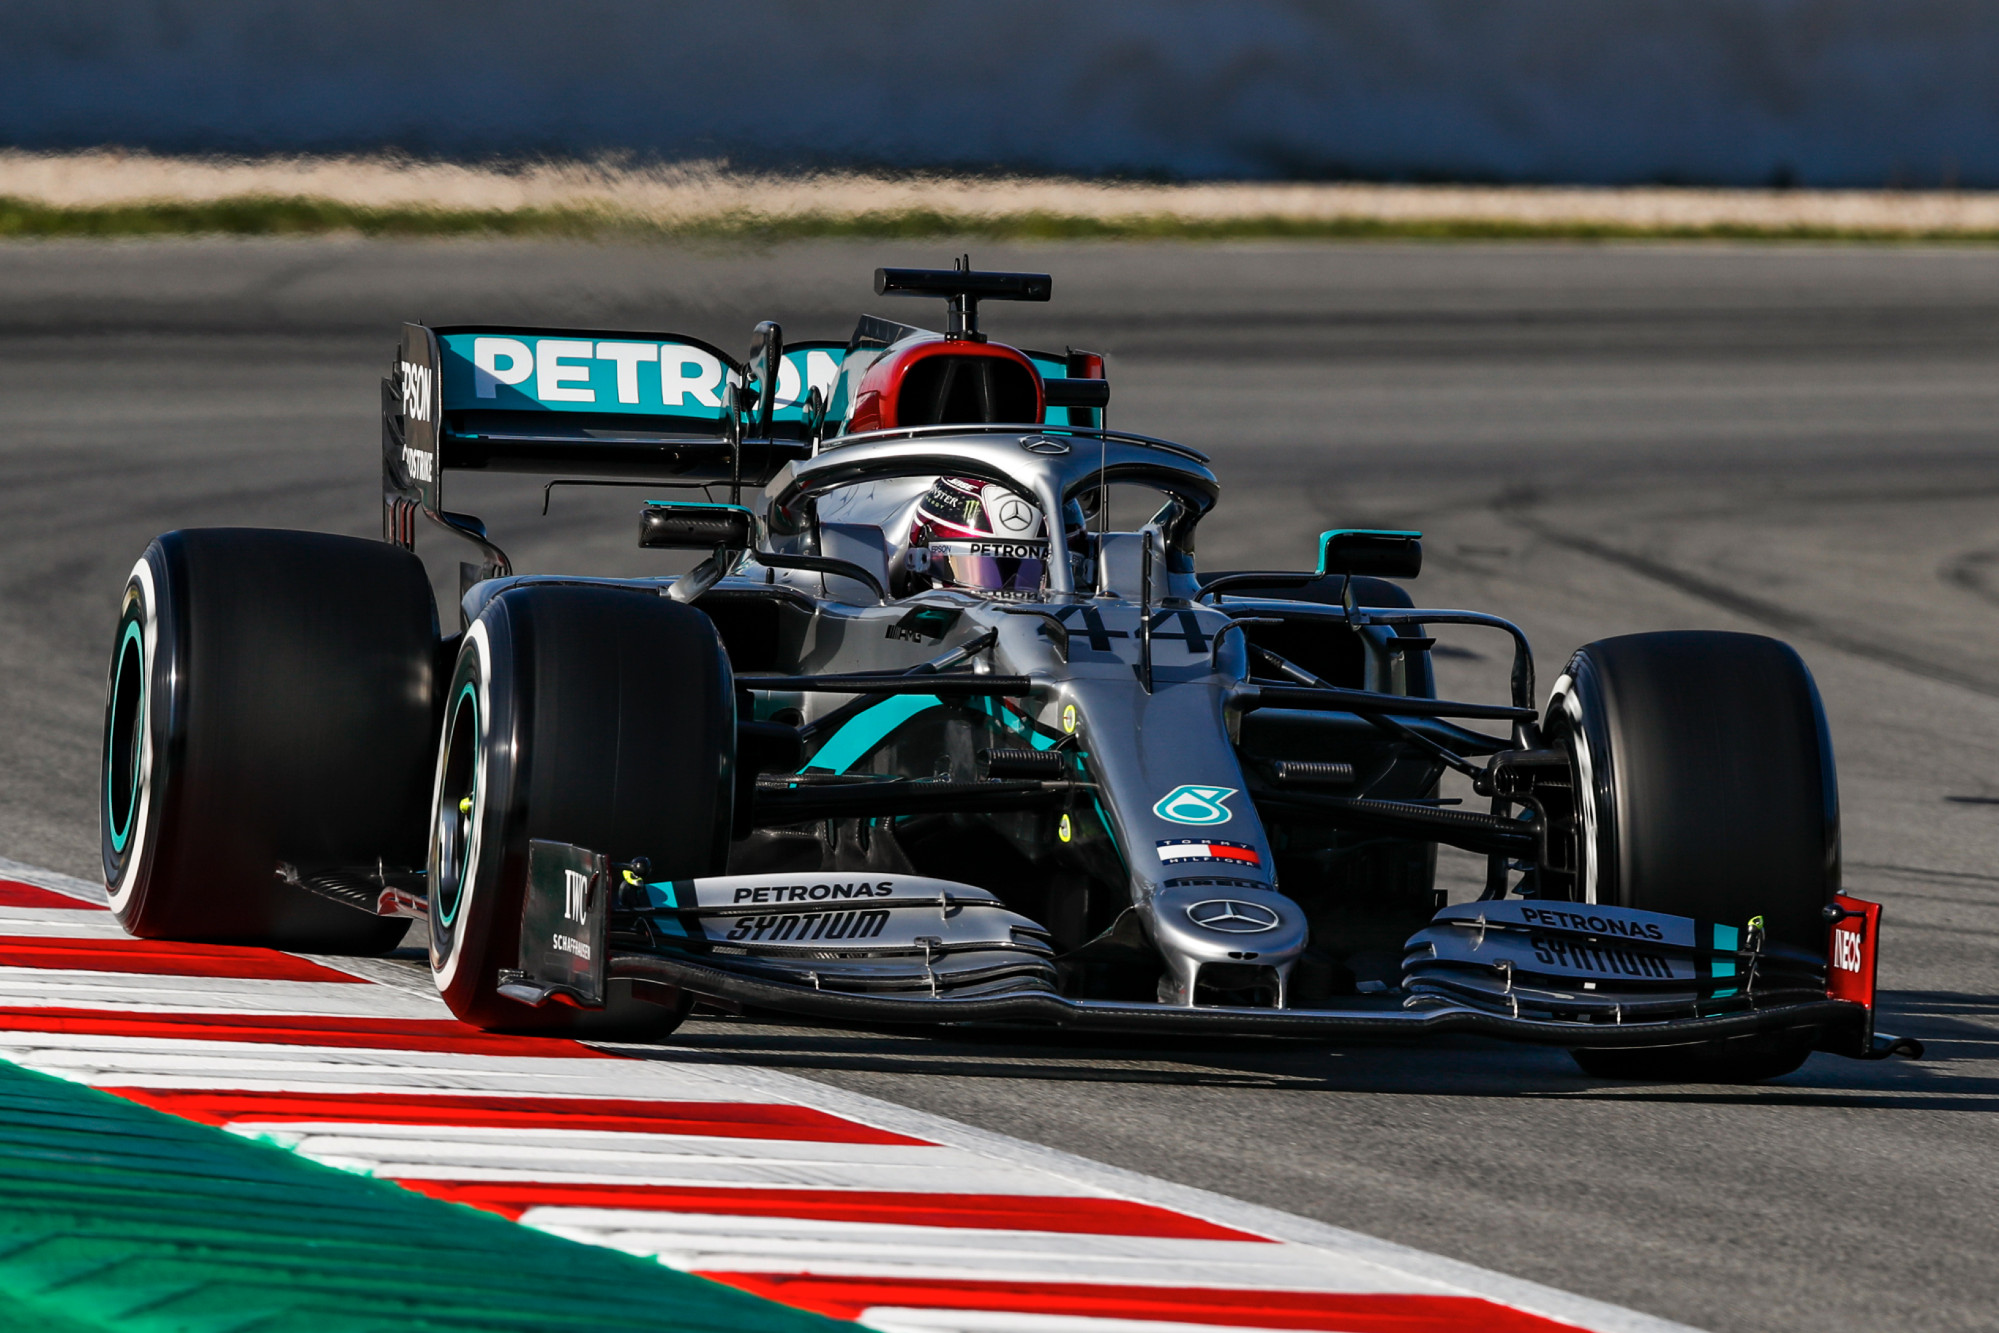 Mercedes drivers to test at Silverstone ahead of F1 return